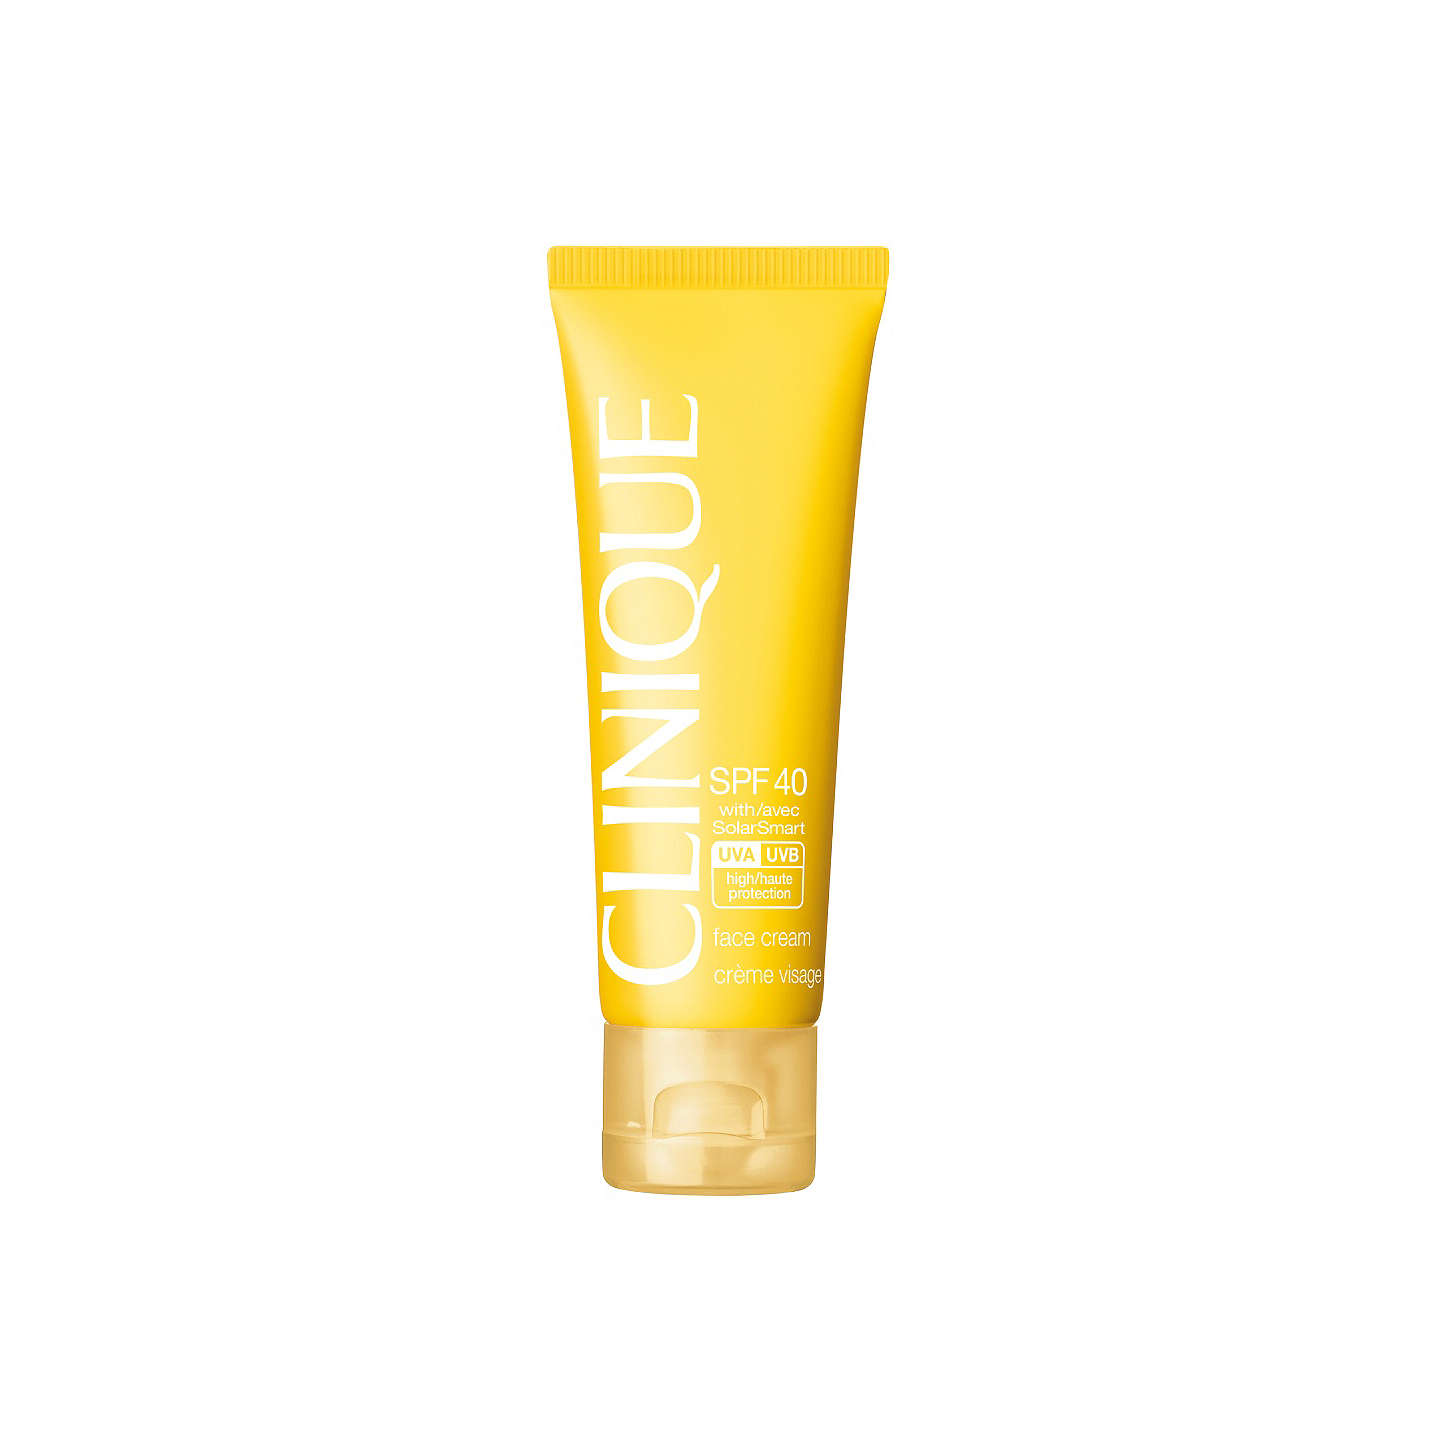 Clinique Body Cream Spf40 150ml At John Lewis